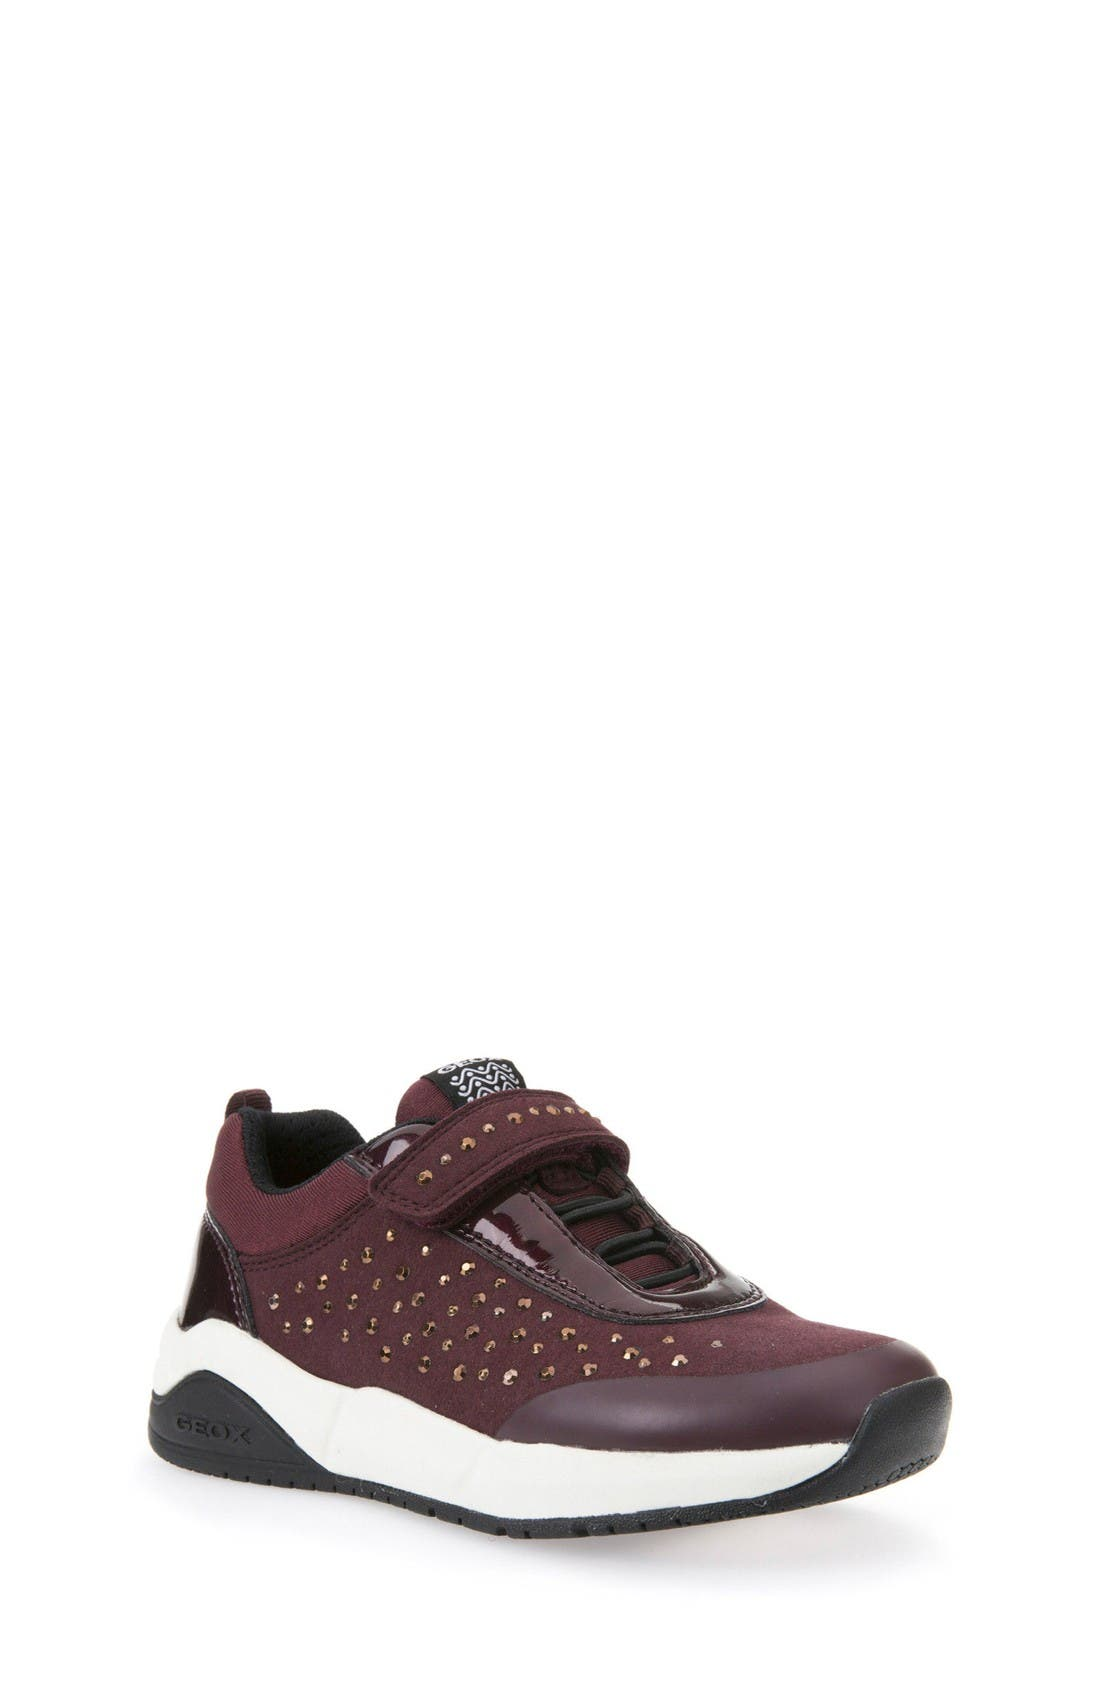 Geox 'Hideaki' Studded Sneaker (Toddler, Little Kid & Big Kid)